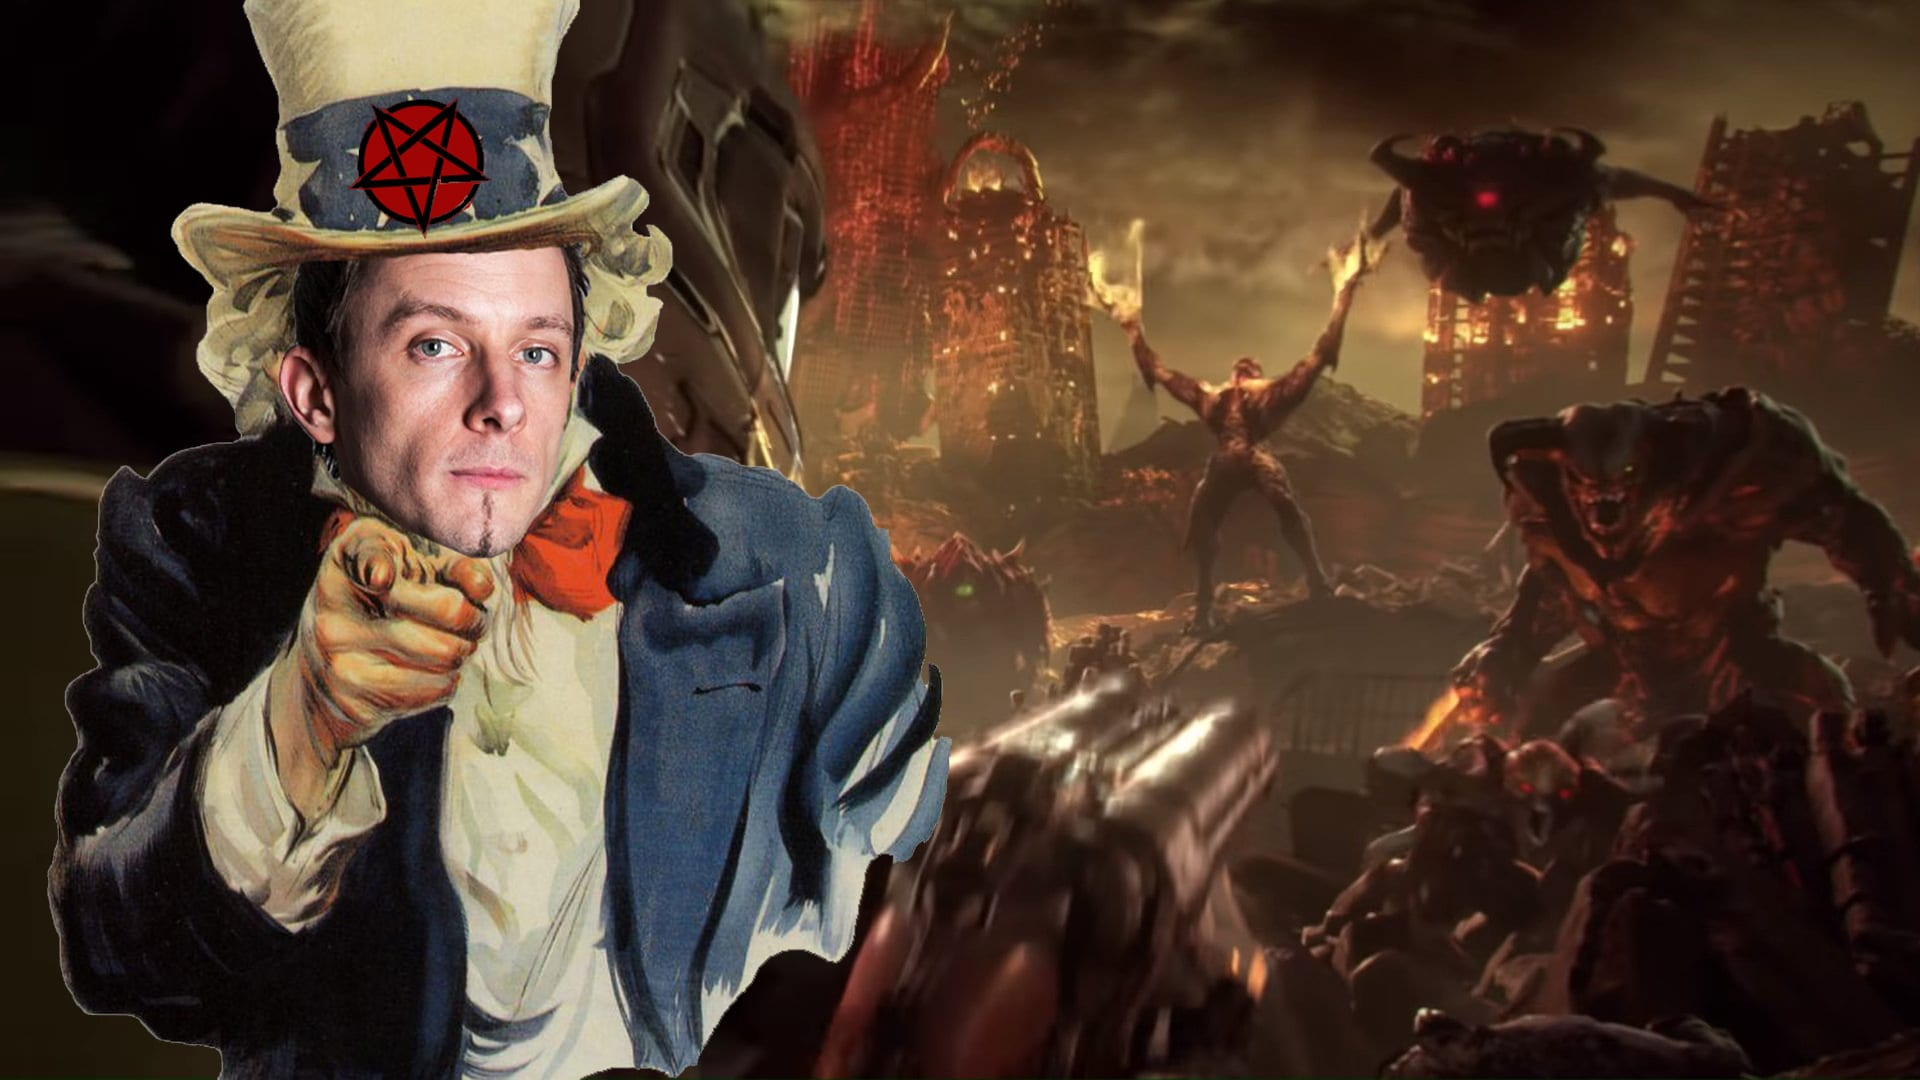 Mick Gordon Wants You